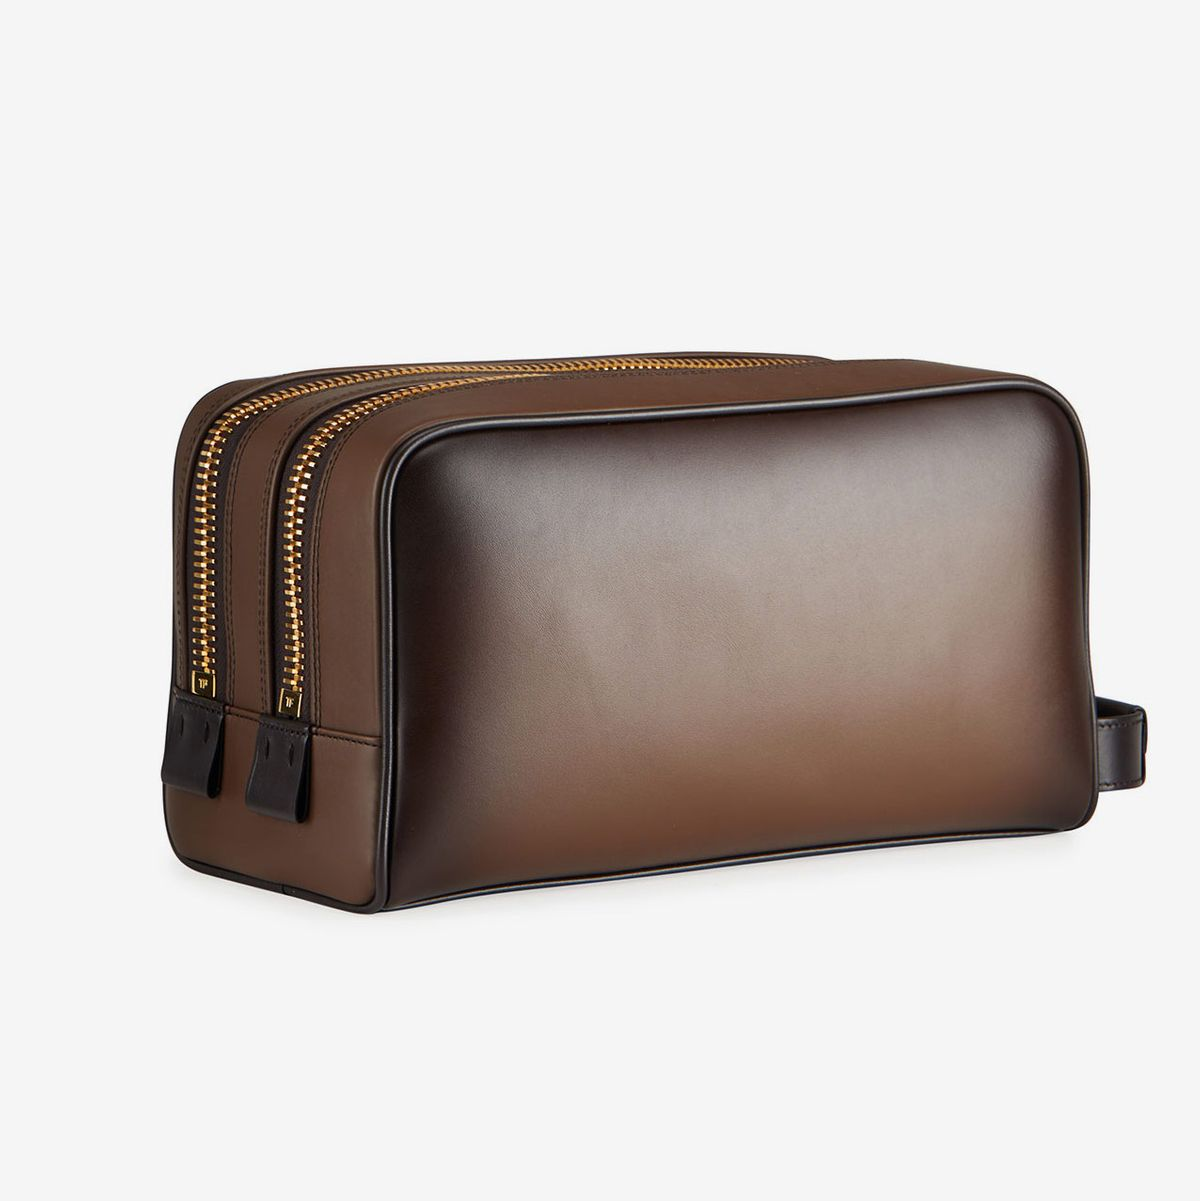 Dopp kit by Kruk Garage Travel kit Mens necessaries bag Toiletry bag Leather Mens pouch Mens gift Birthday gift FREE PERSONALIZATION